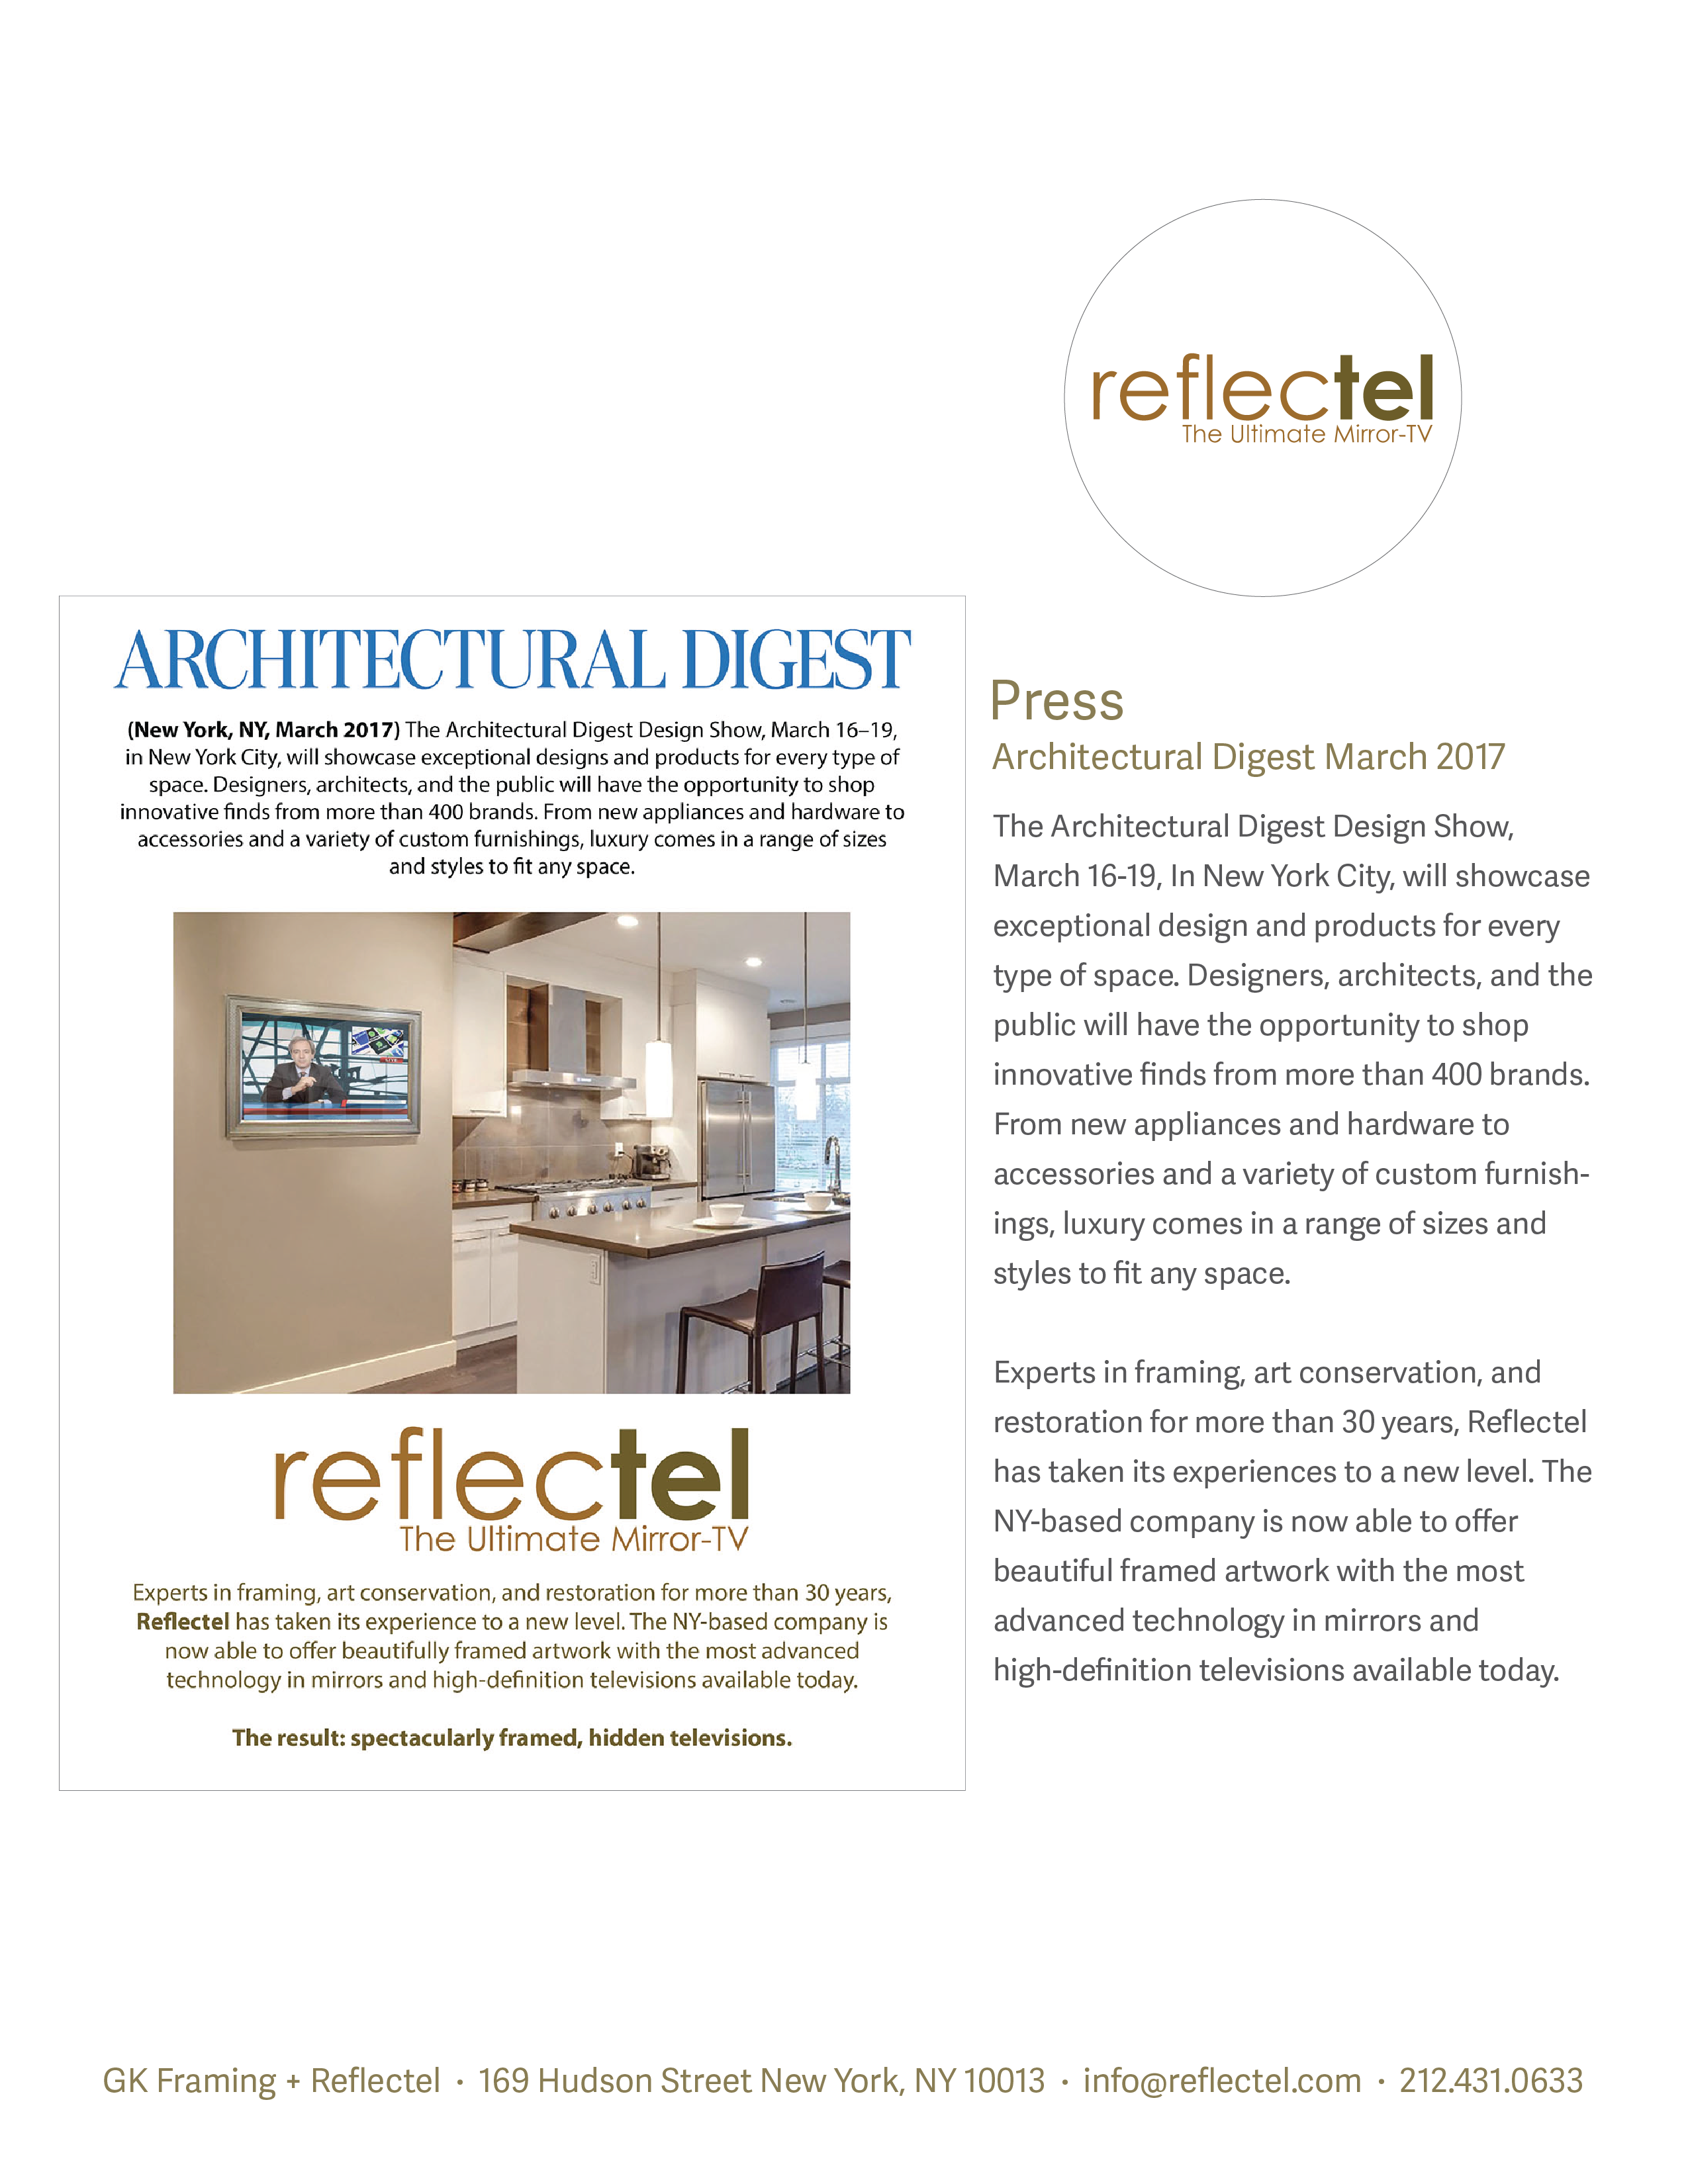 the architectural digest design show march 16 19 in new york city